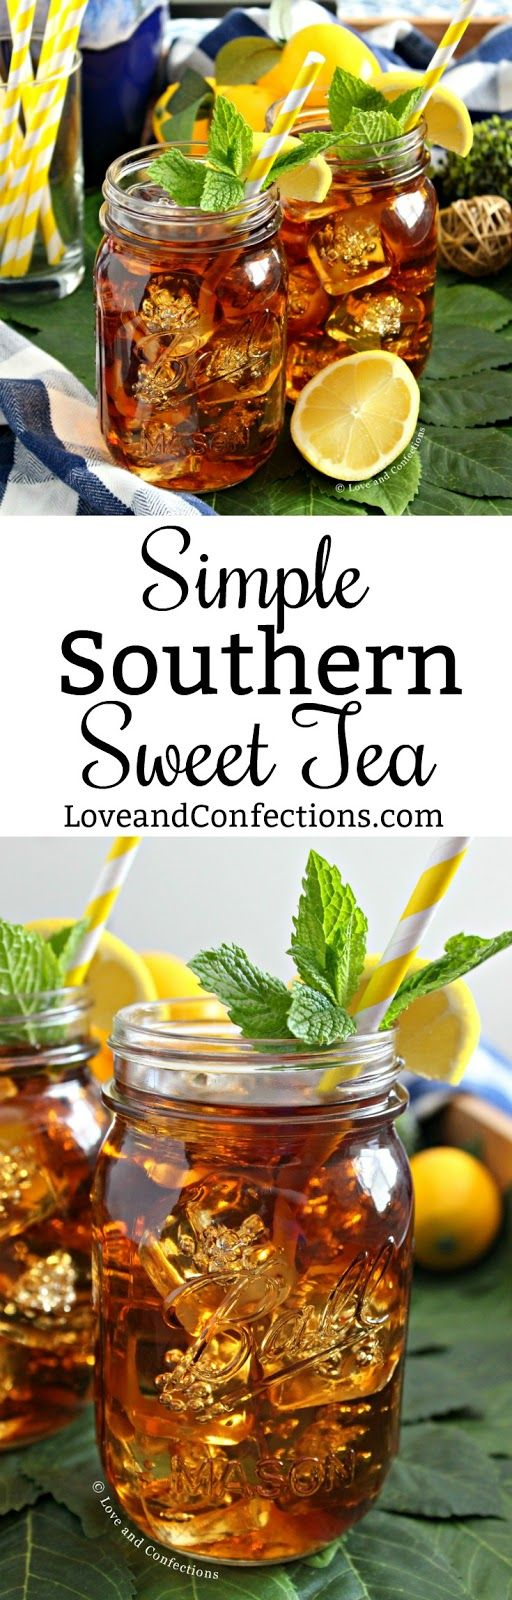 Simple Southern Sweet Tea from LoveandConfections.com